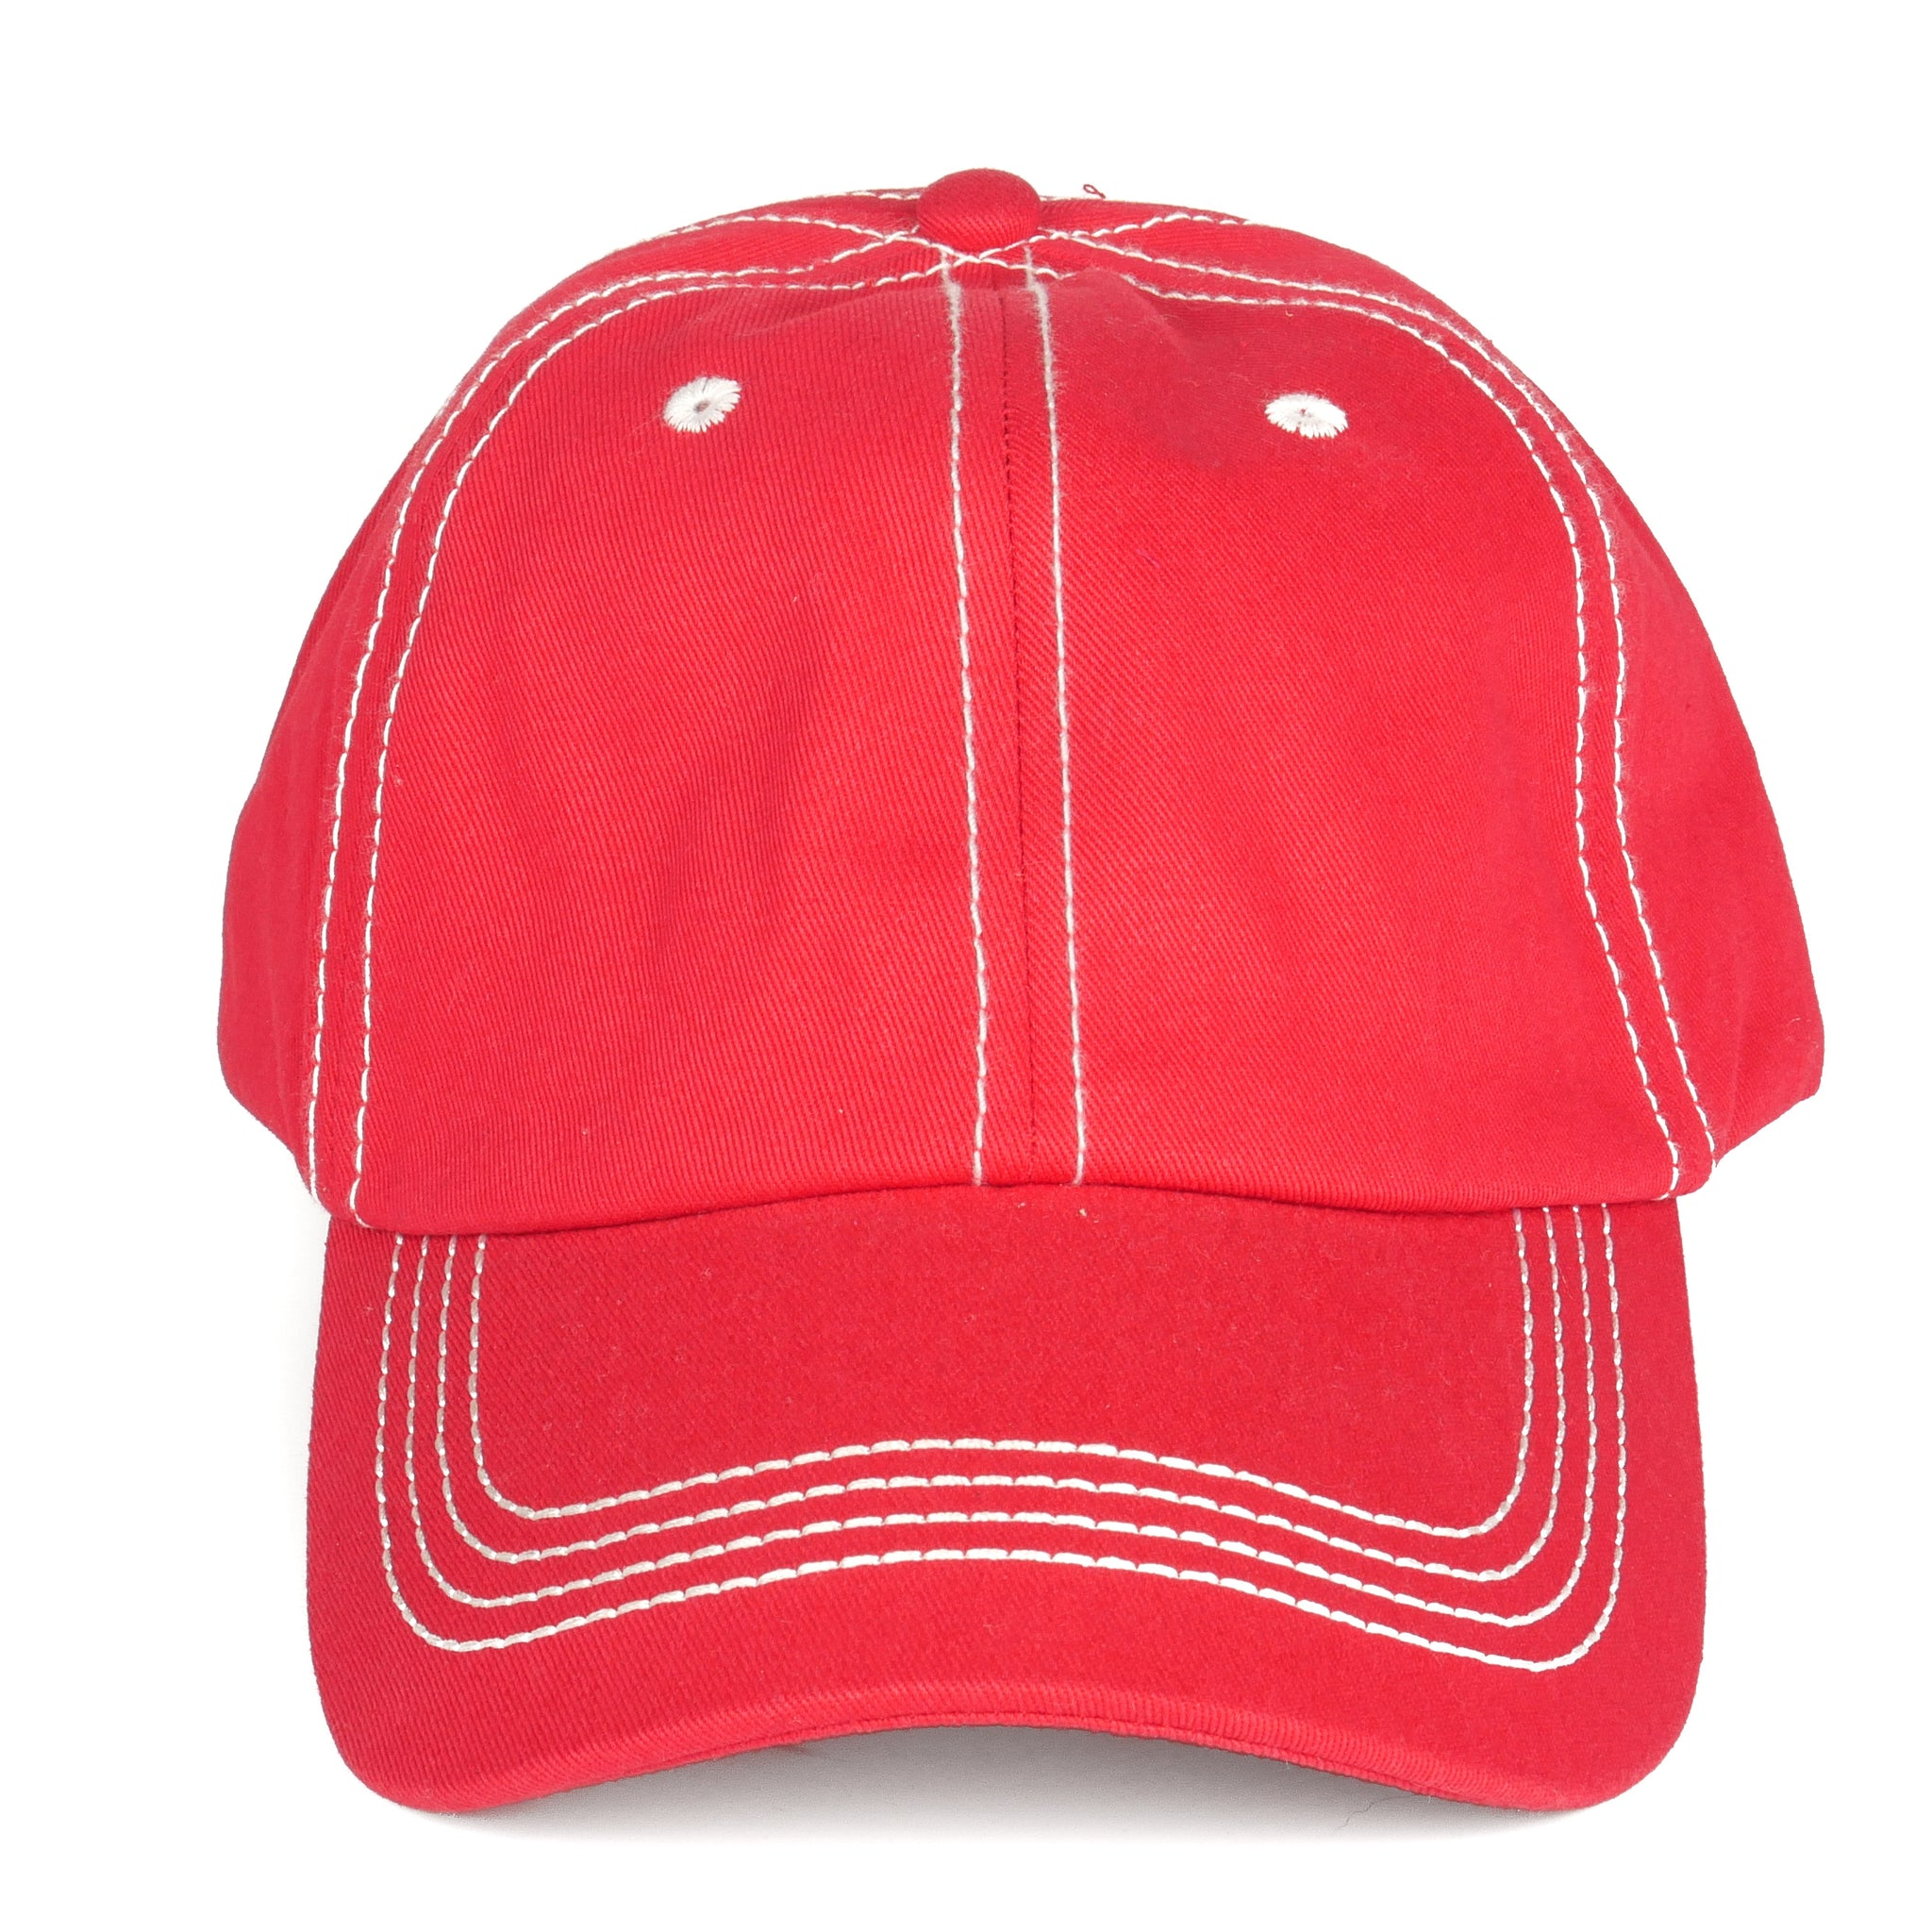 Stitch Dad Hat - Red